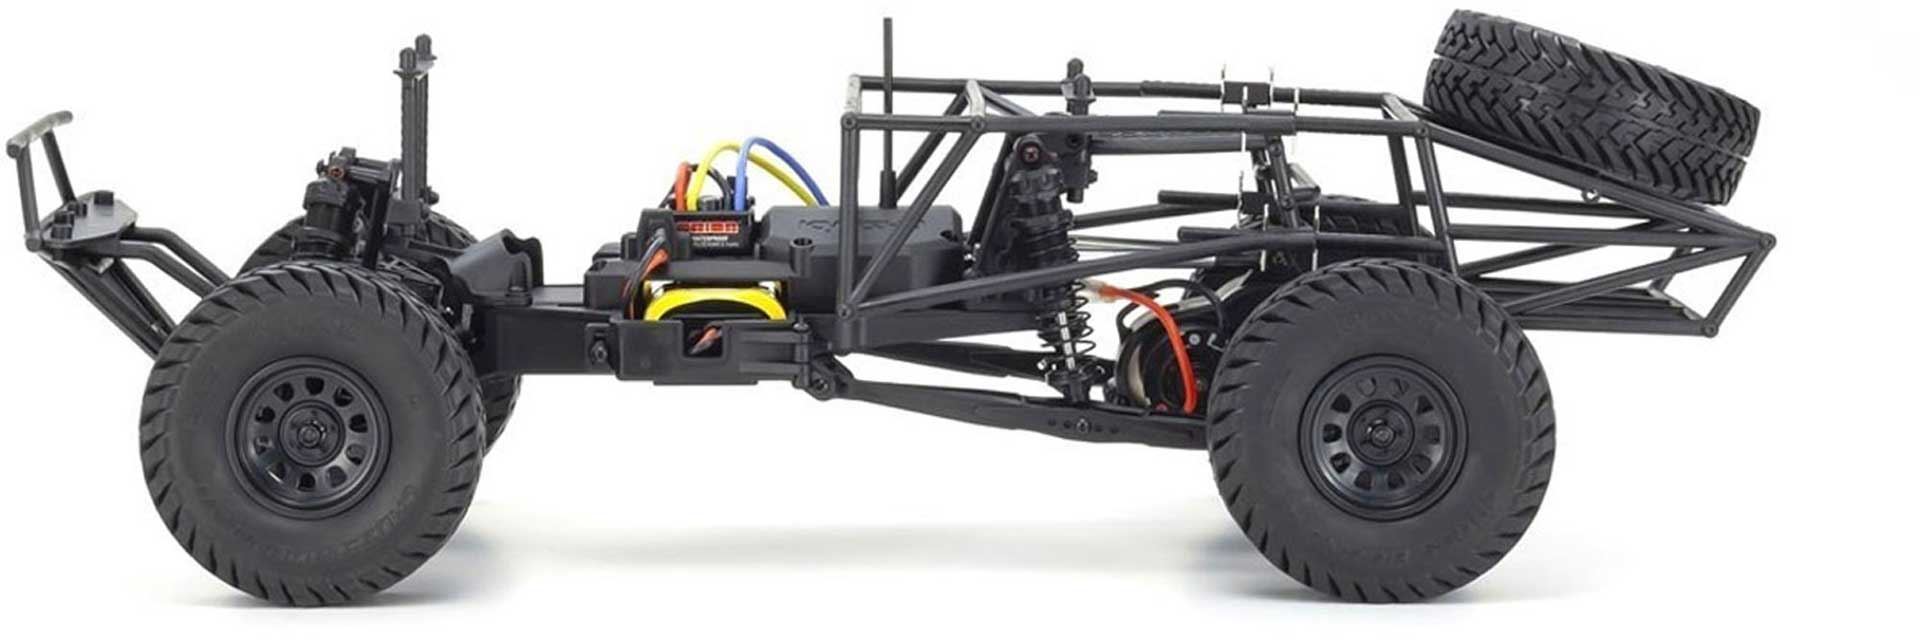 KYOSHO OUTLAW RAMPAGE PRO 1:10 EP READYSET T1 ROT